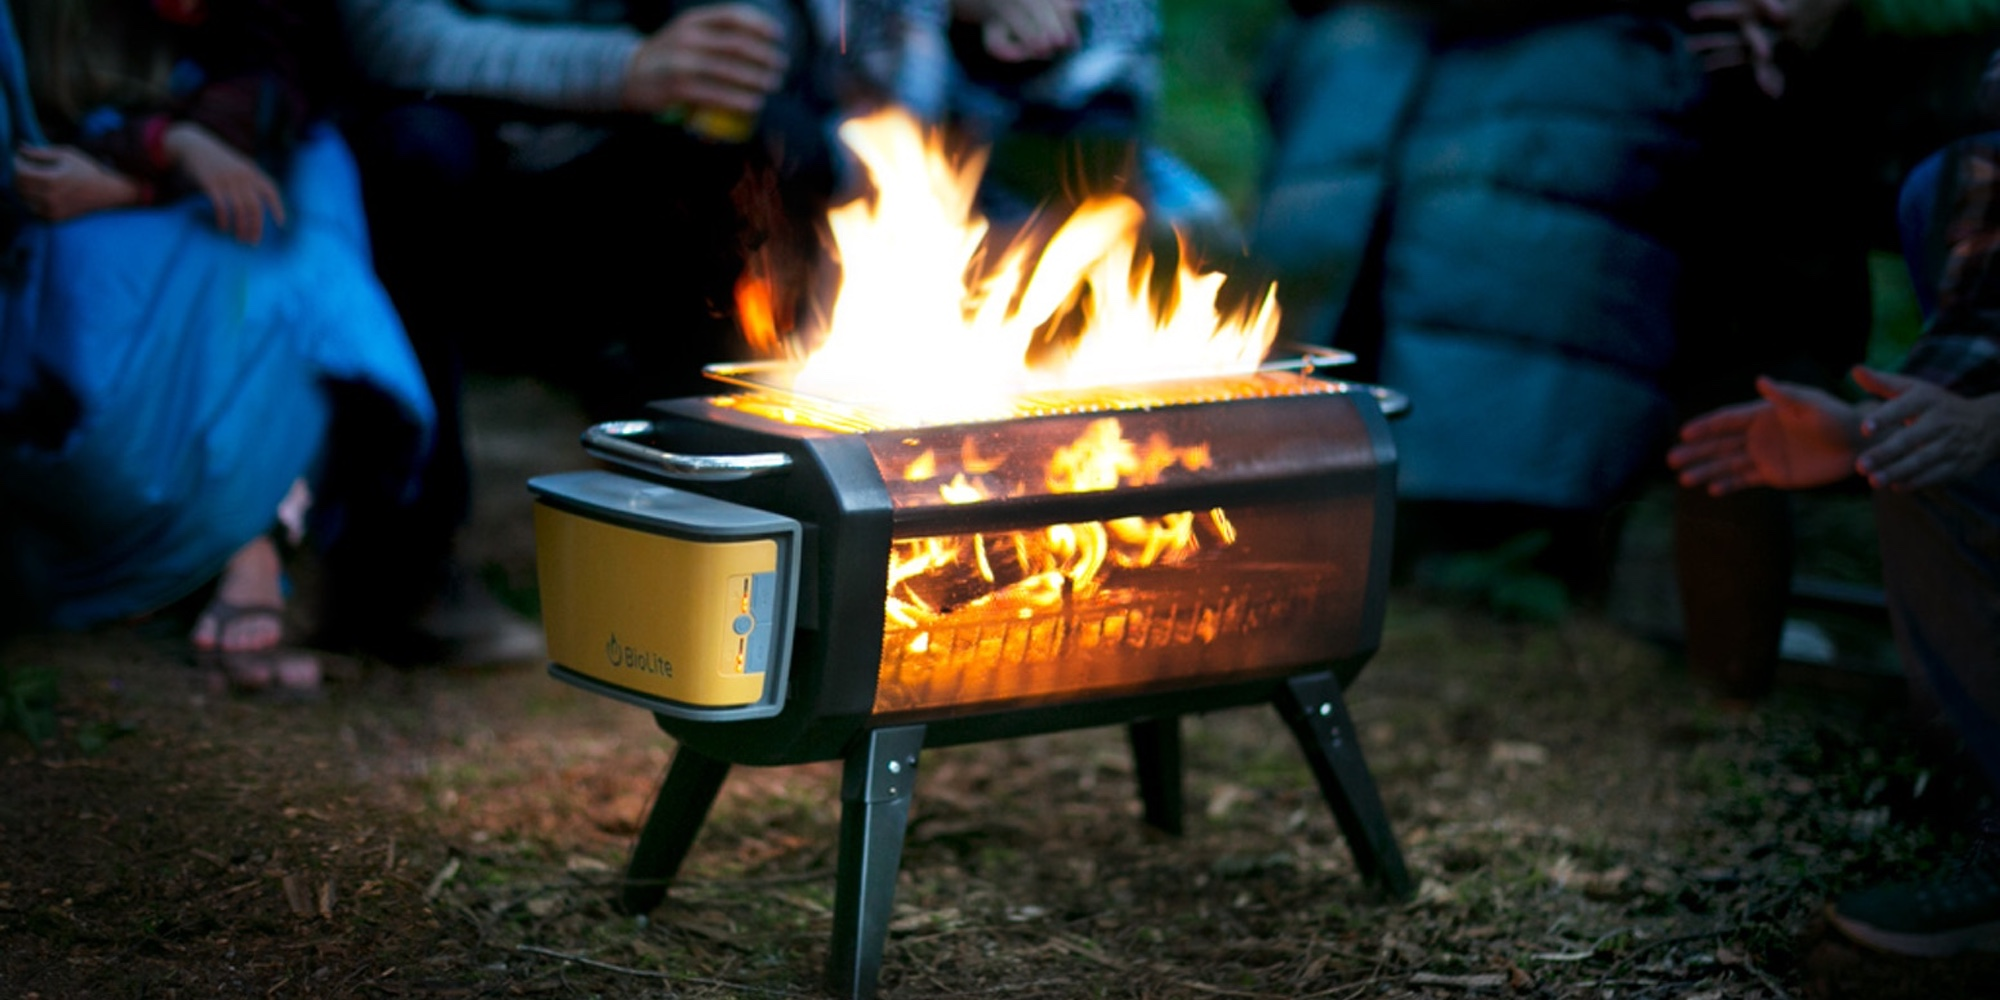 This BioLite FirePit keeps the smoke out of your outdoor experience